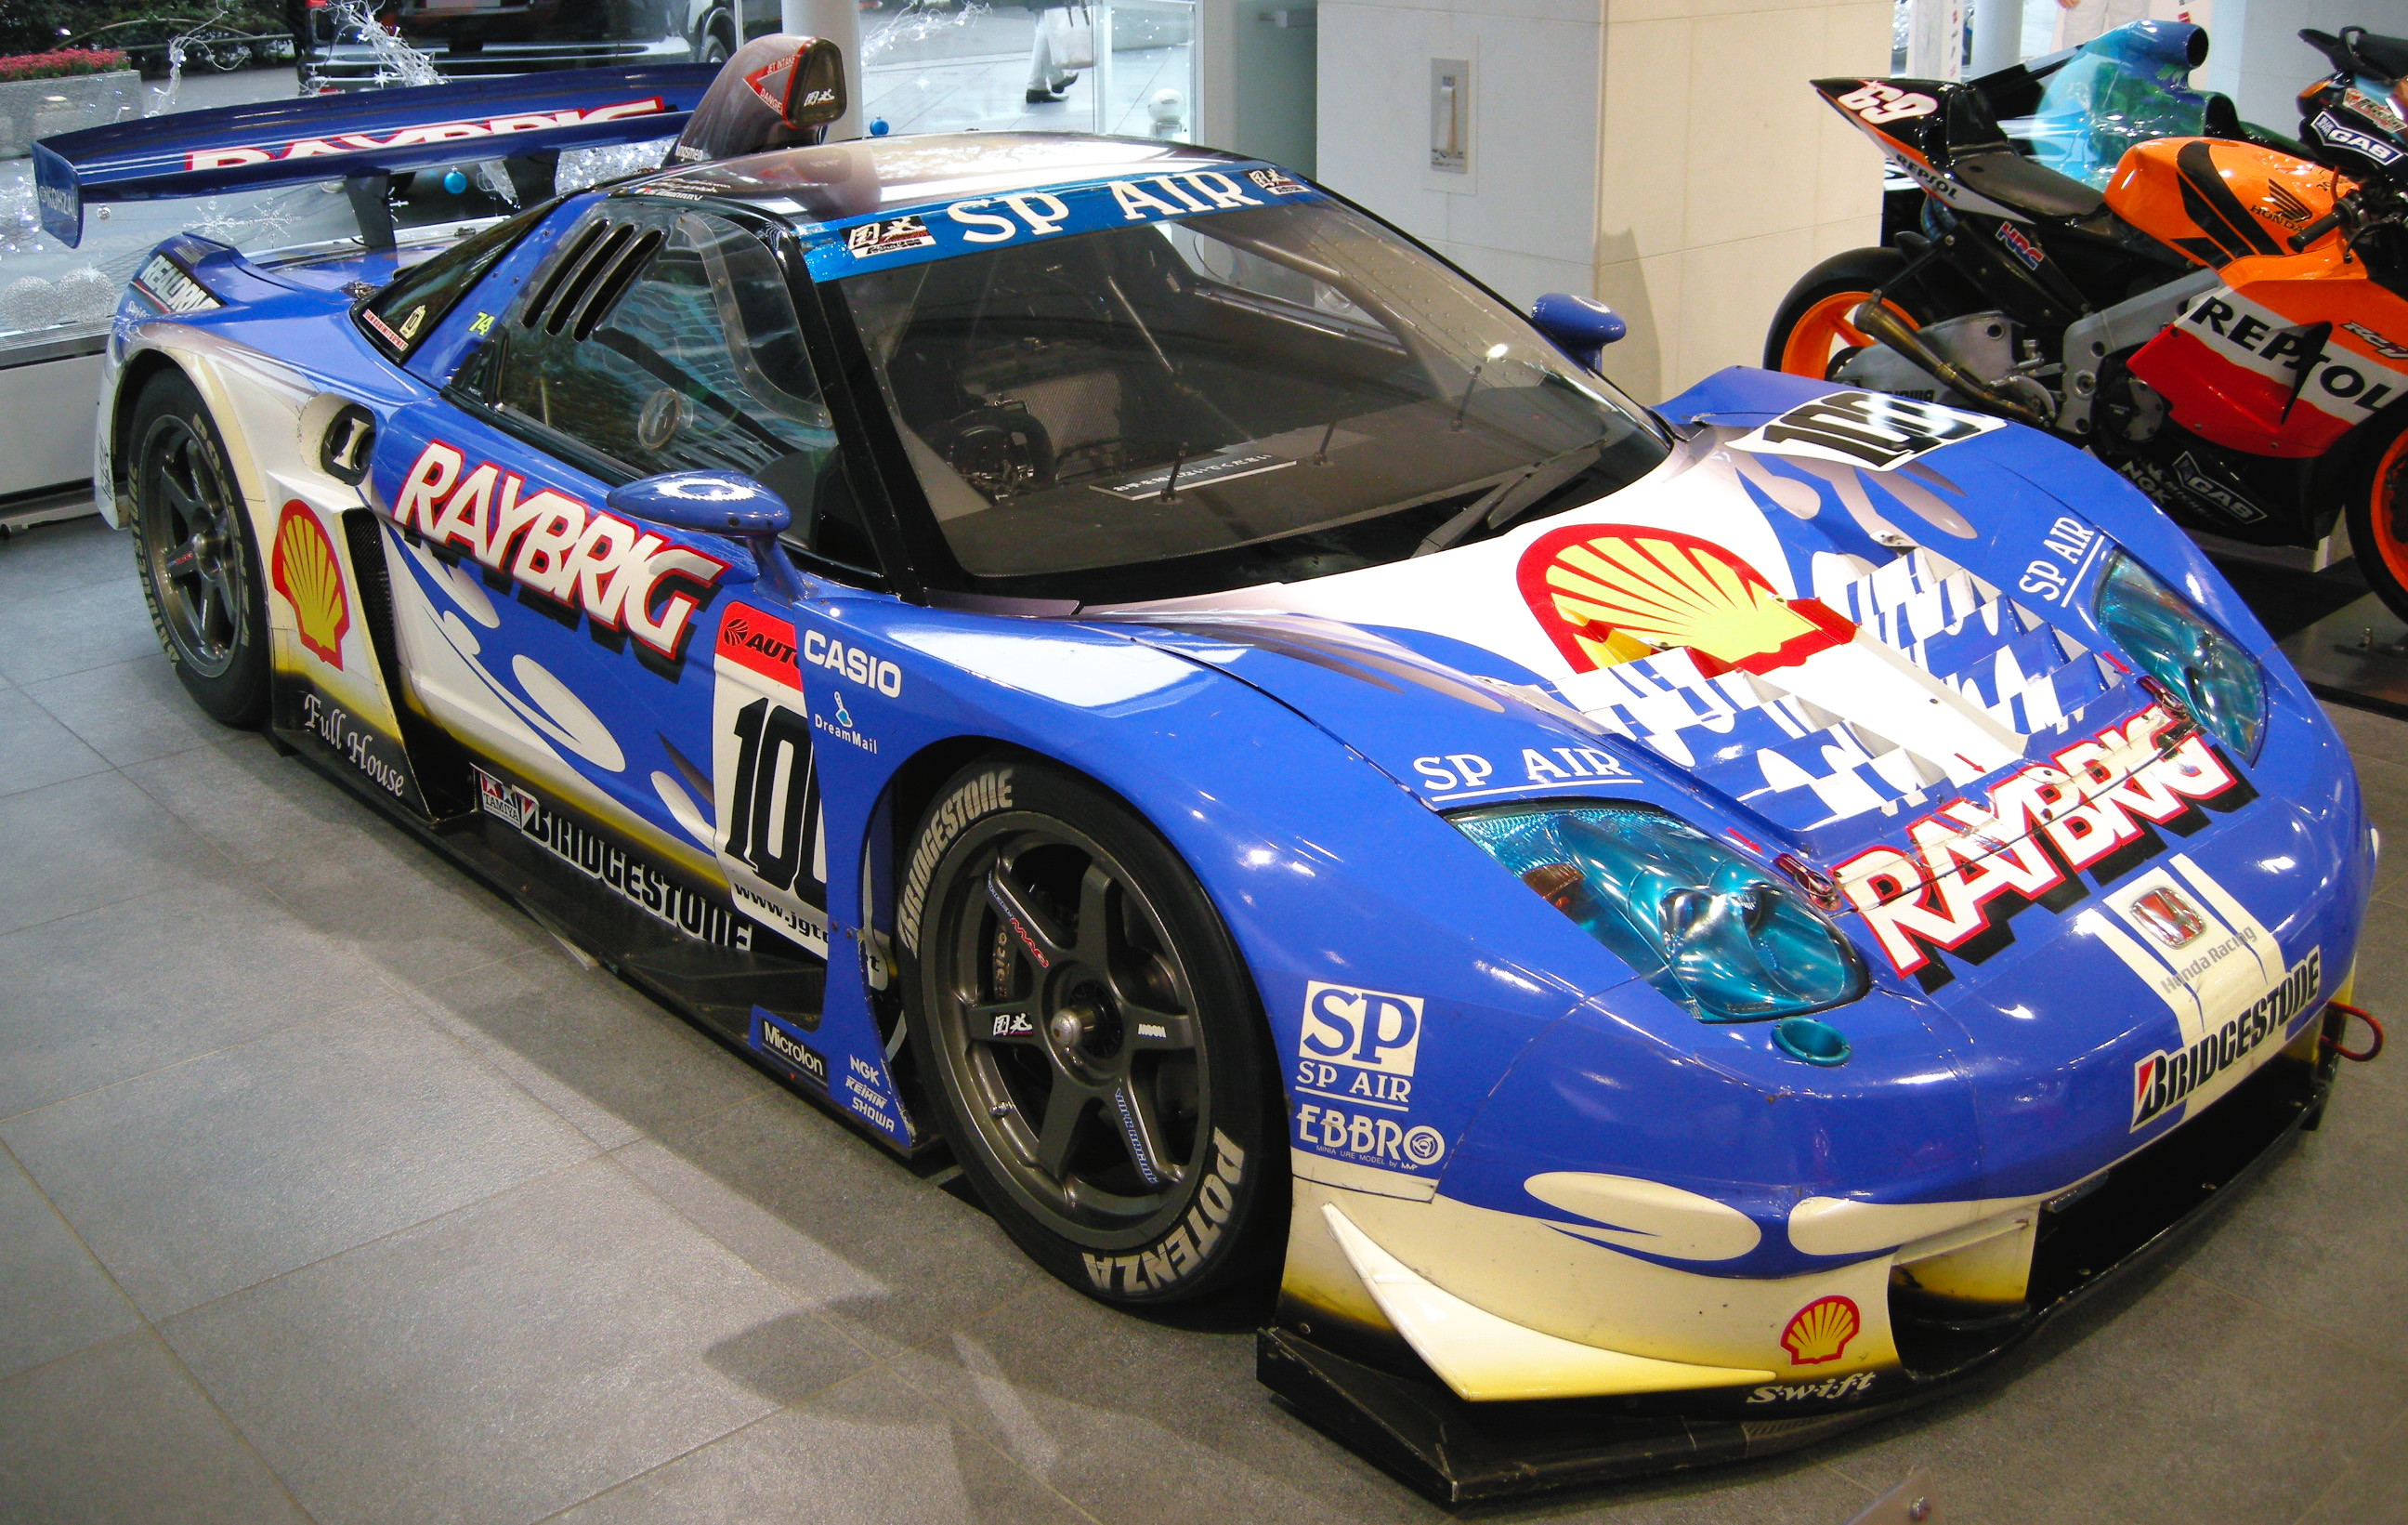 File:2004 RAYBRIG NSX.JPG - Wikimedia Commons